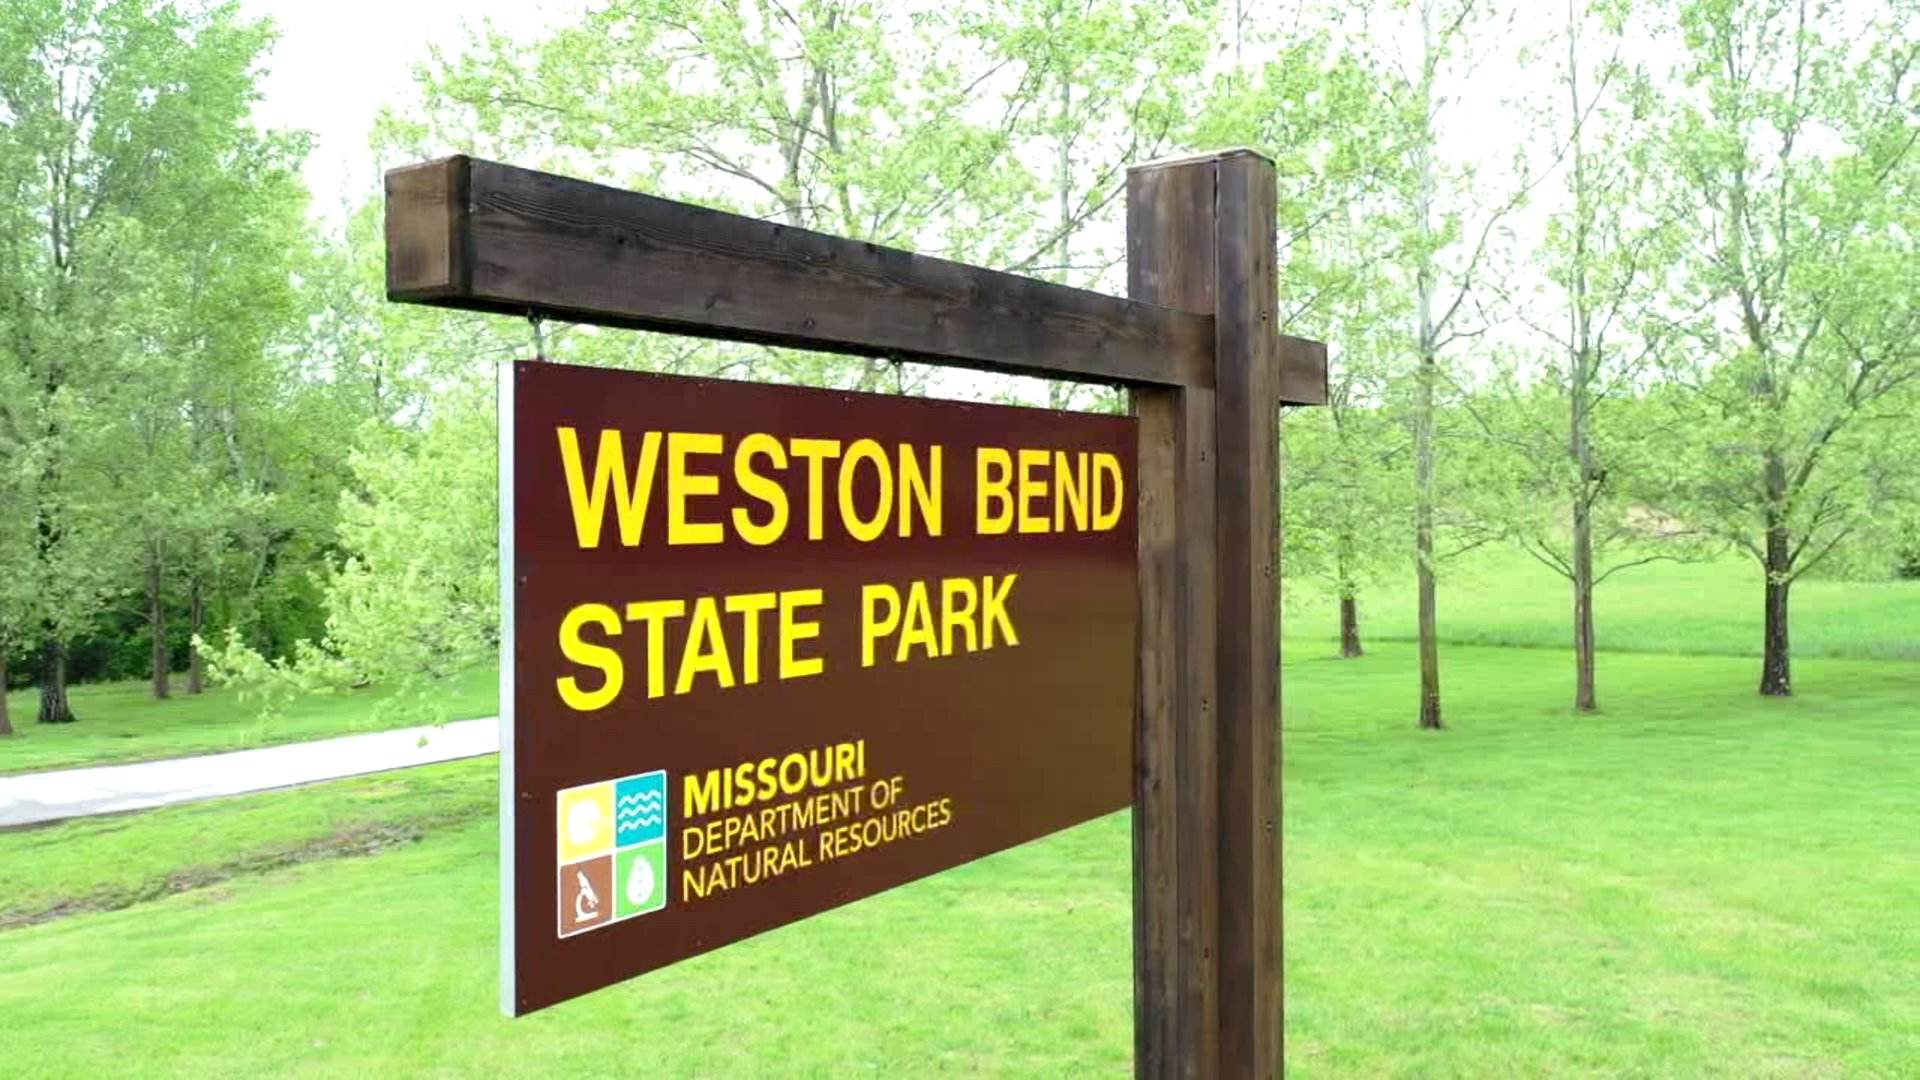 weston bend state park sign